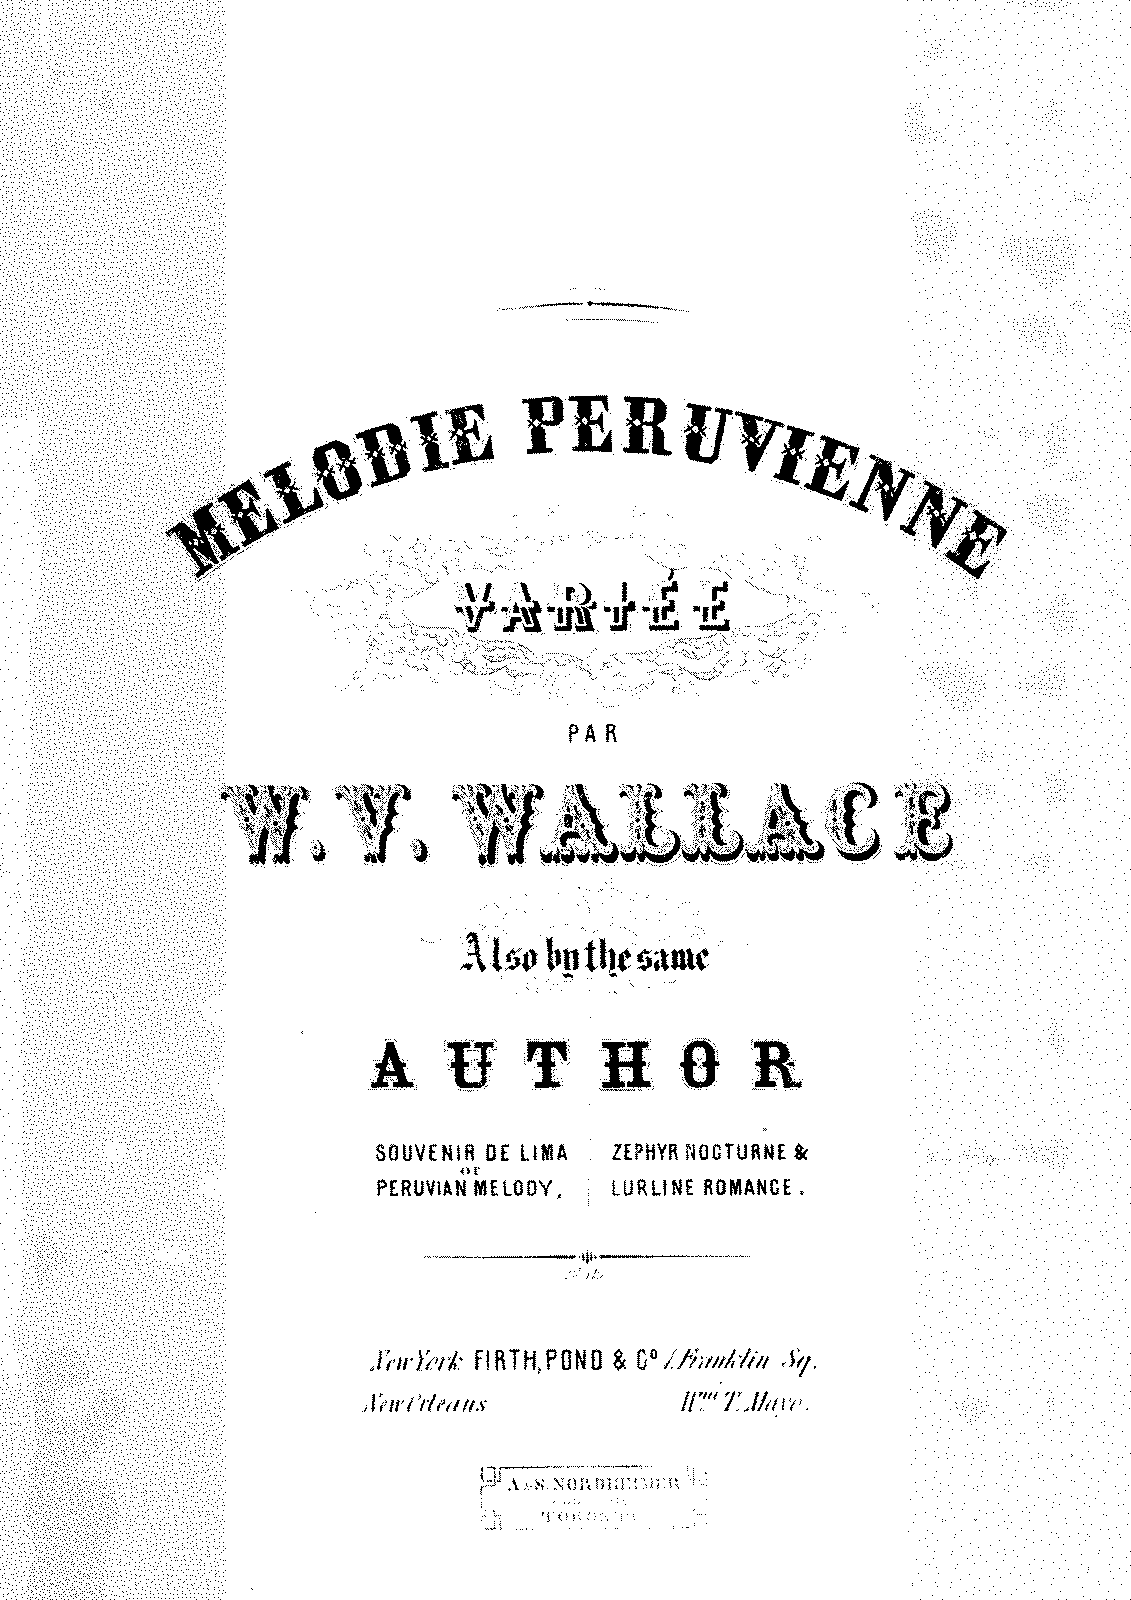 PMLP217310-Wallace - Melodie peruvienne Pf.pdf